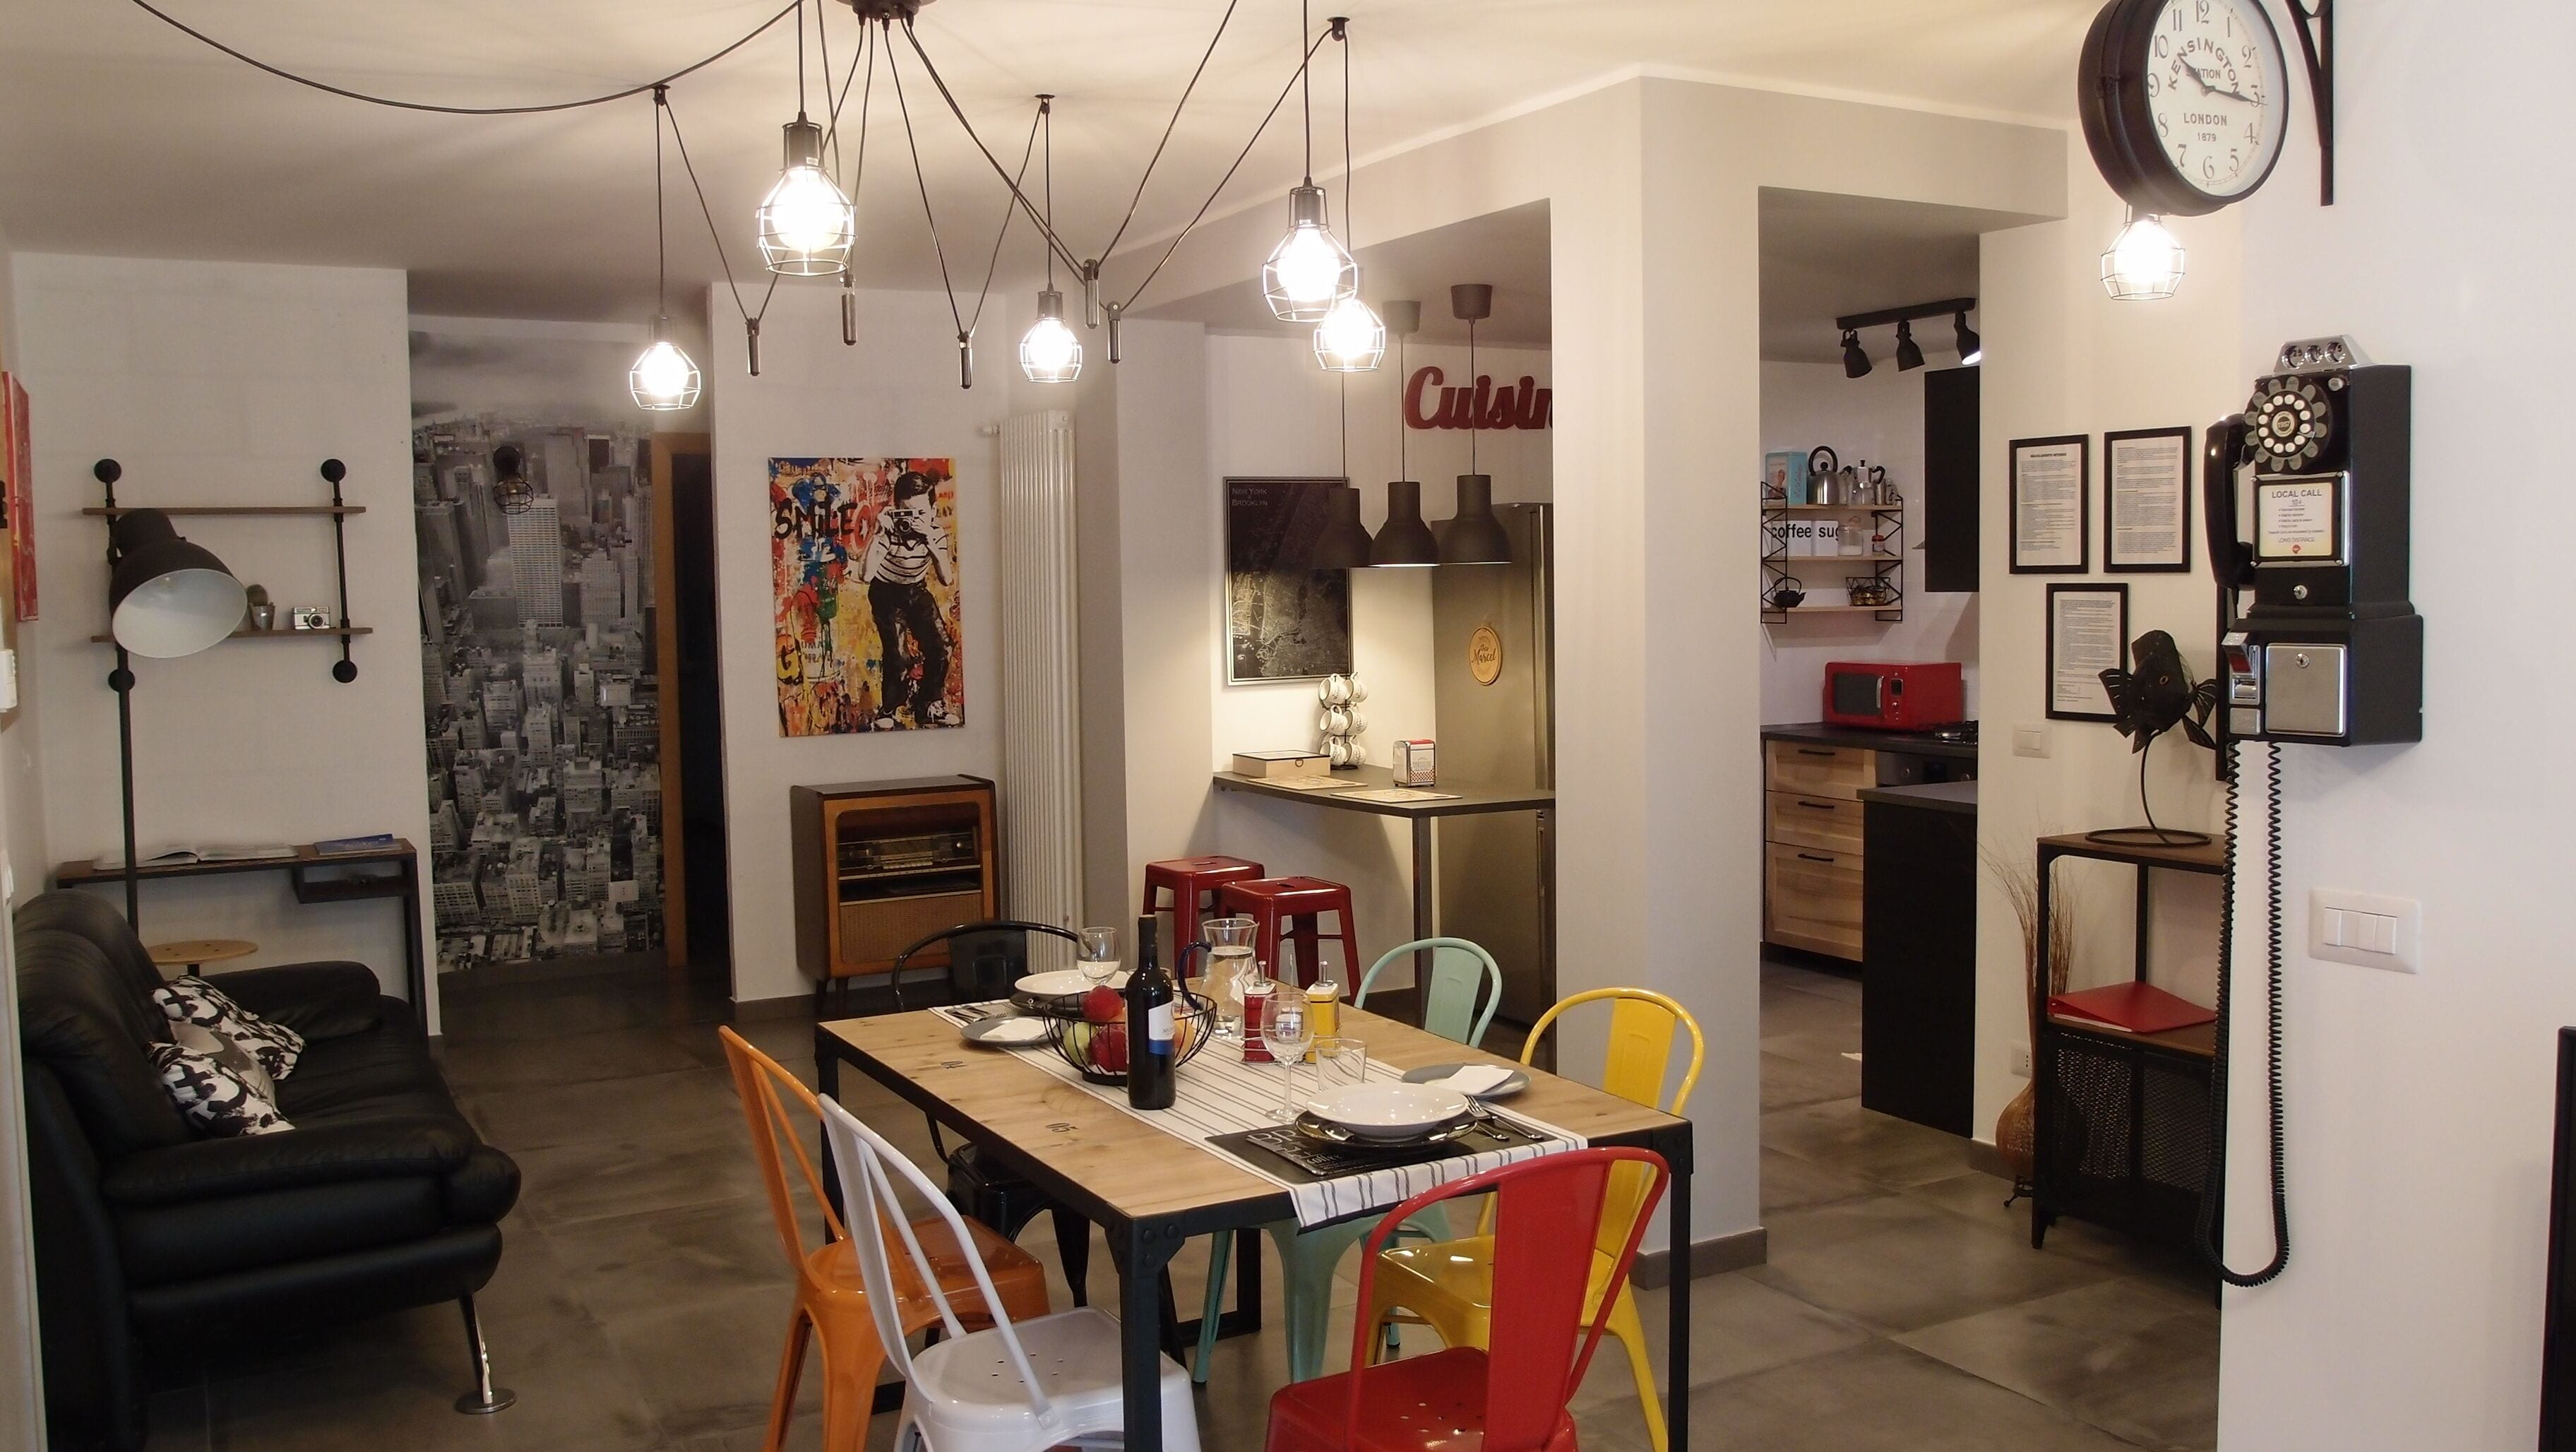 The Black dog House: All NEW Retro & Industrial Apartment